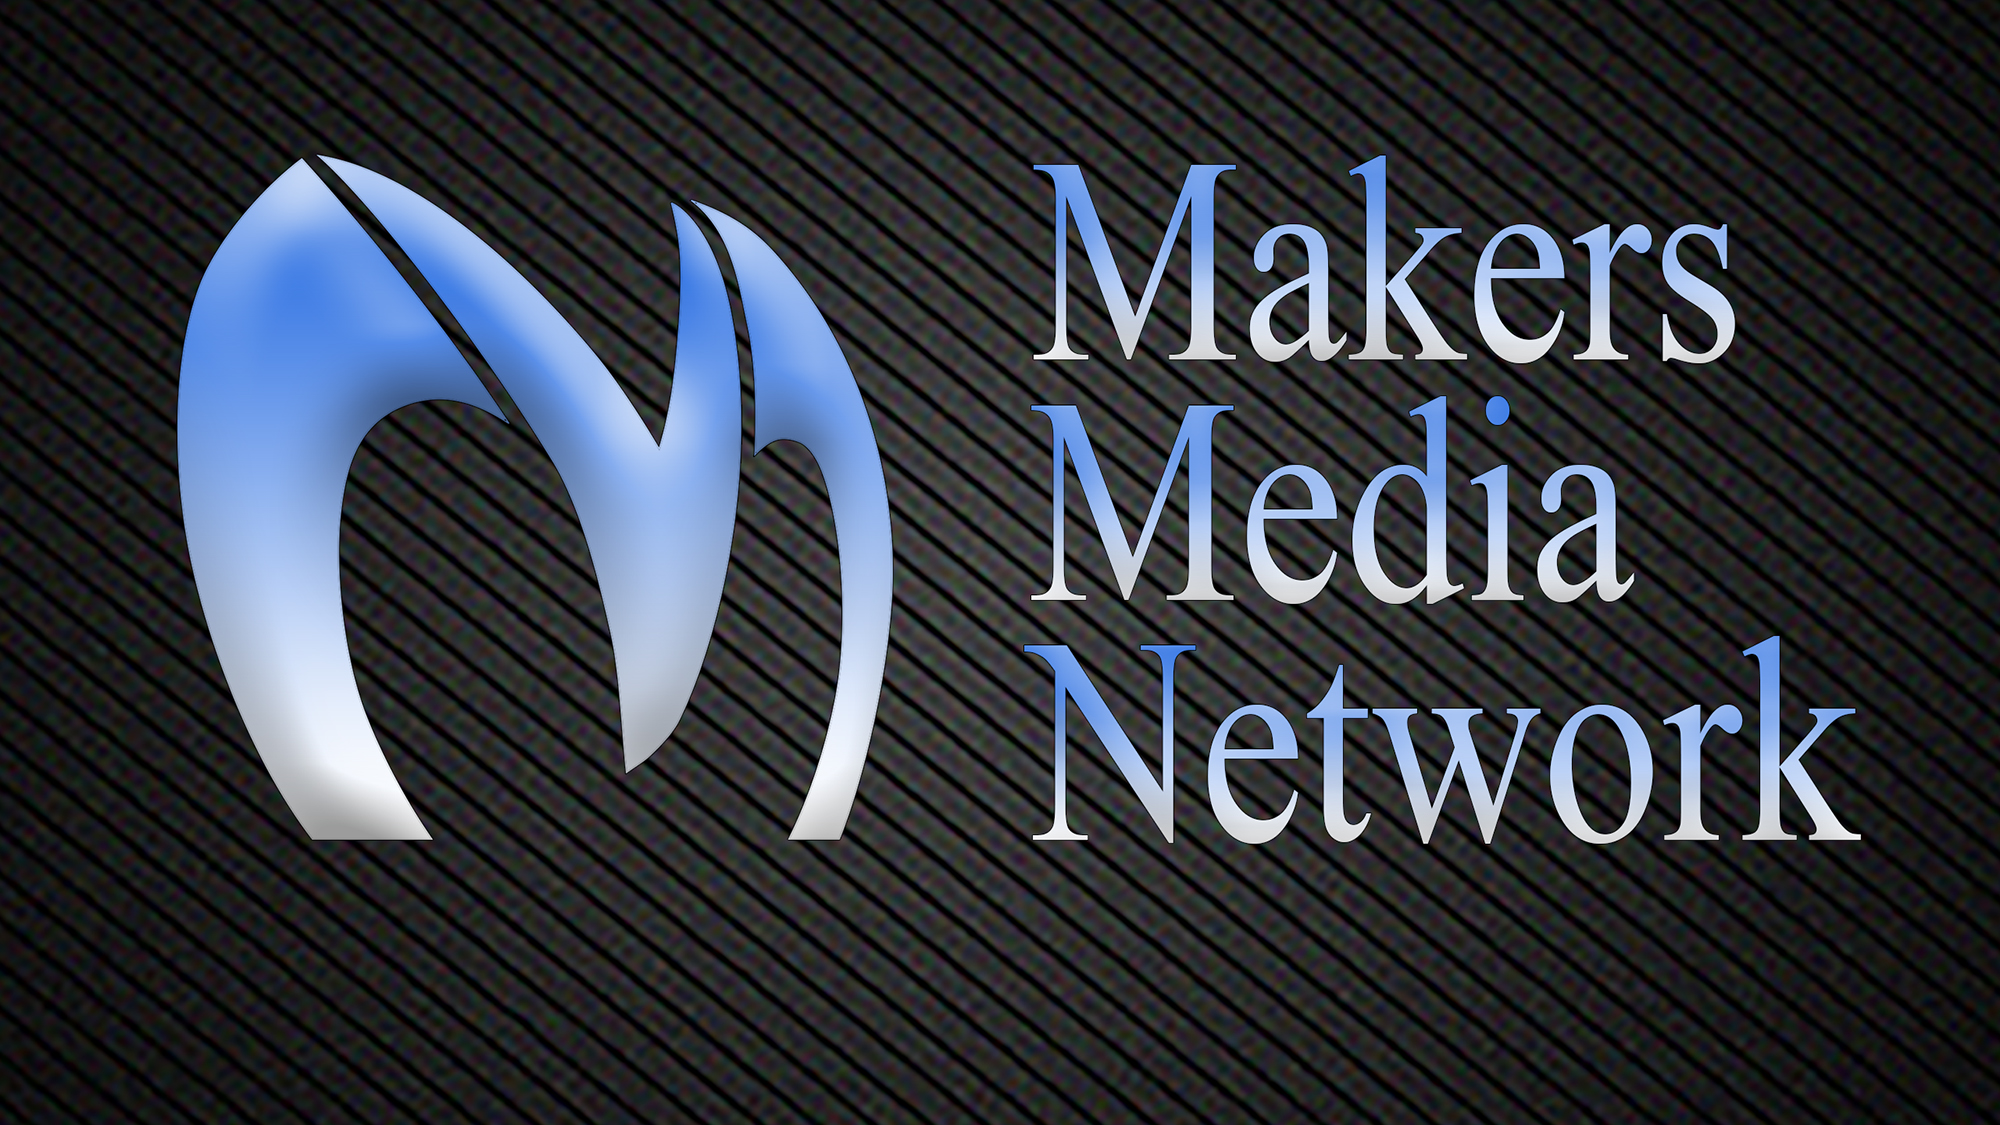 Makers Media Network